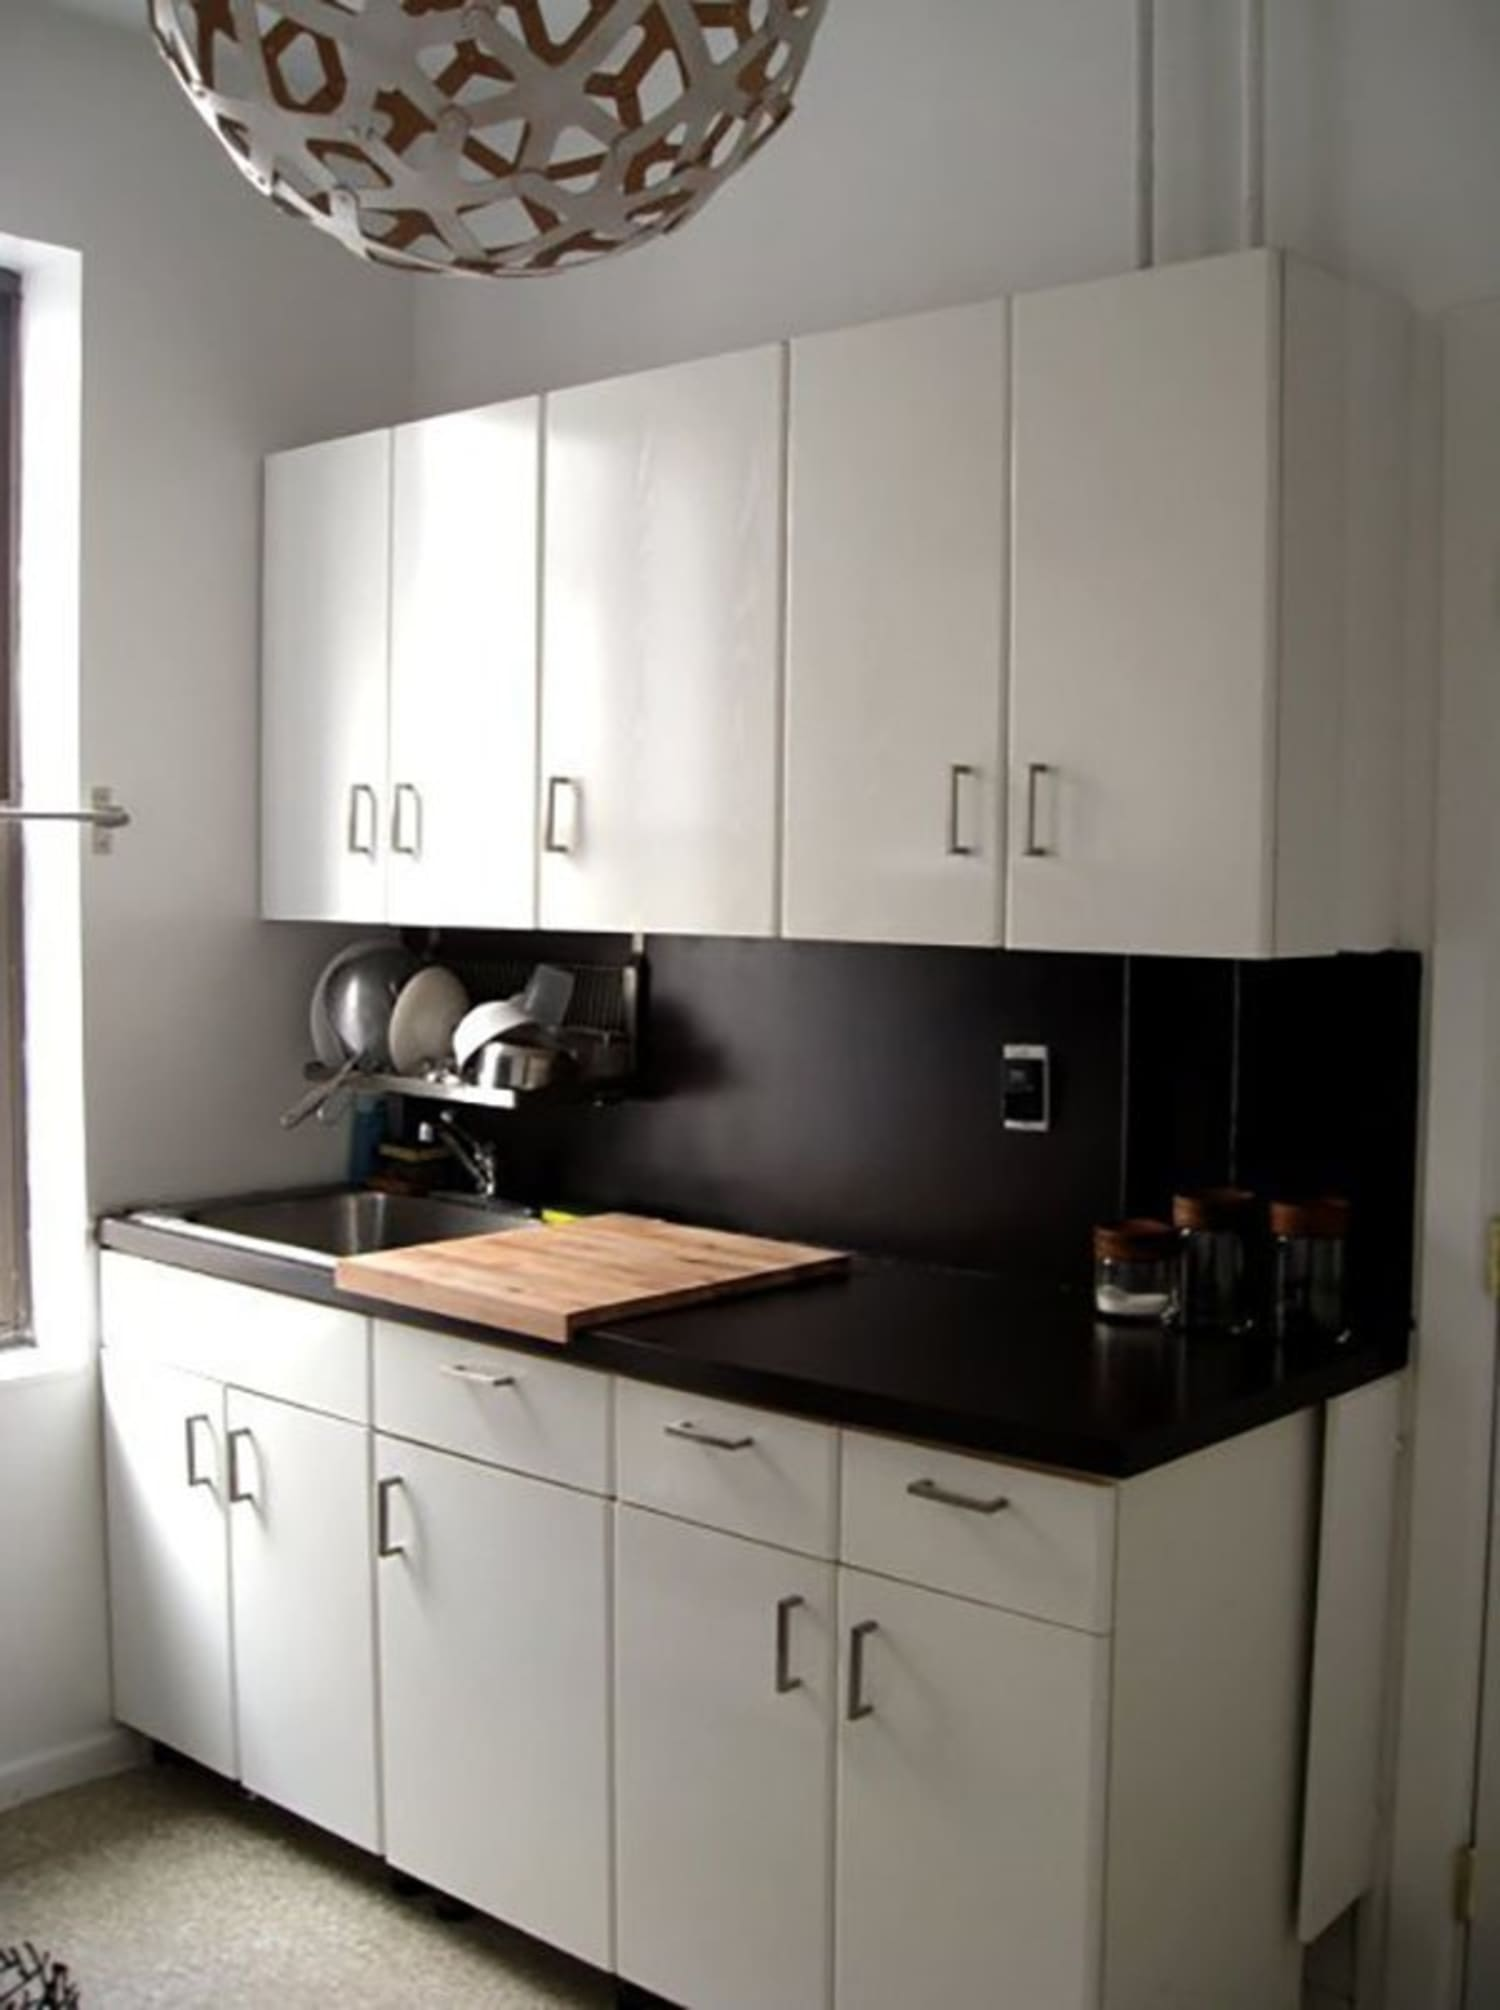 10 Ways We've Disguised Ugly Rental Kitchen Countertops | Kitchn Ideas For Ugly Kitchen Cabinets on ideas for ugly walls, ideas for ugly fireplaces, ideas for ugly fences, ideas for ugly bookshelves,